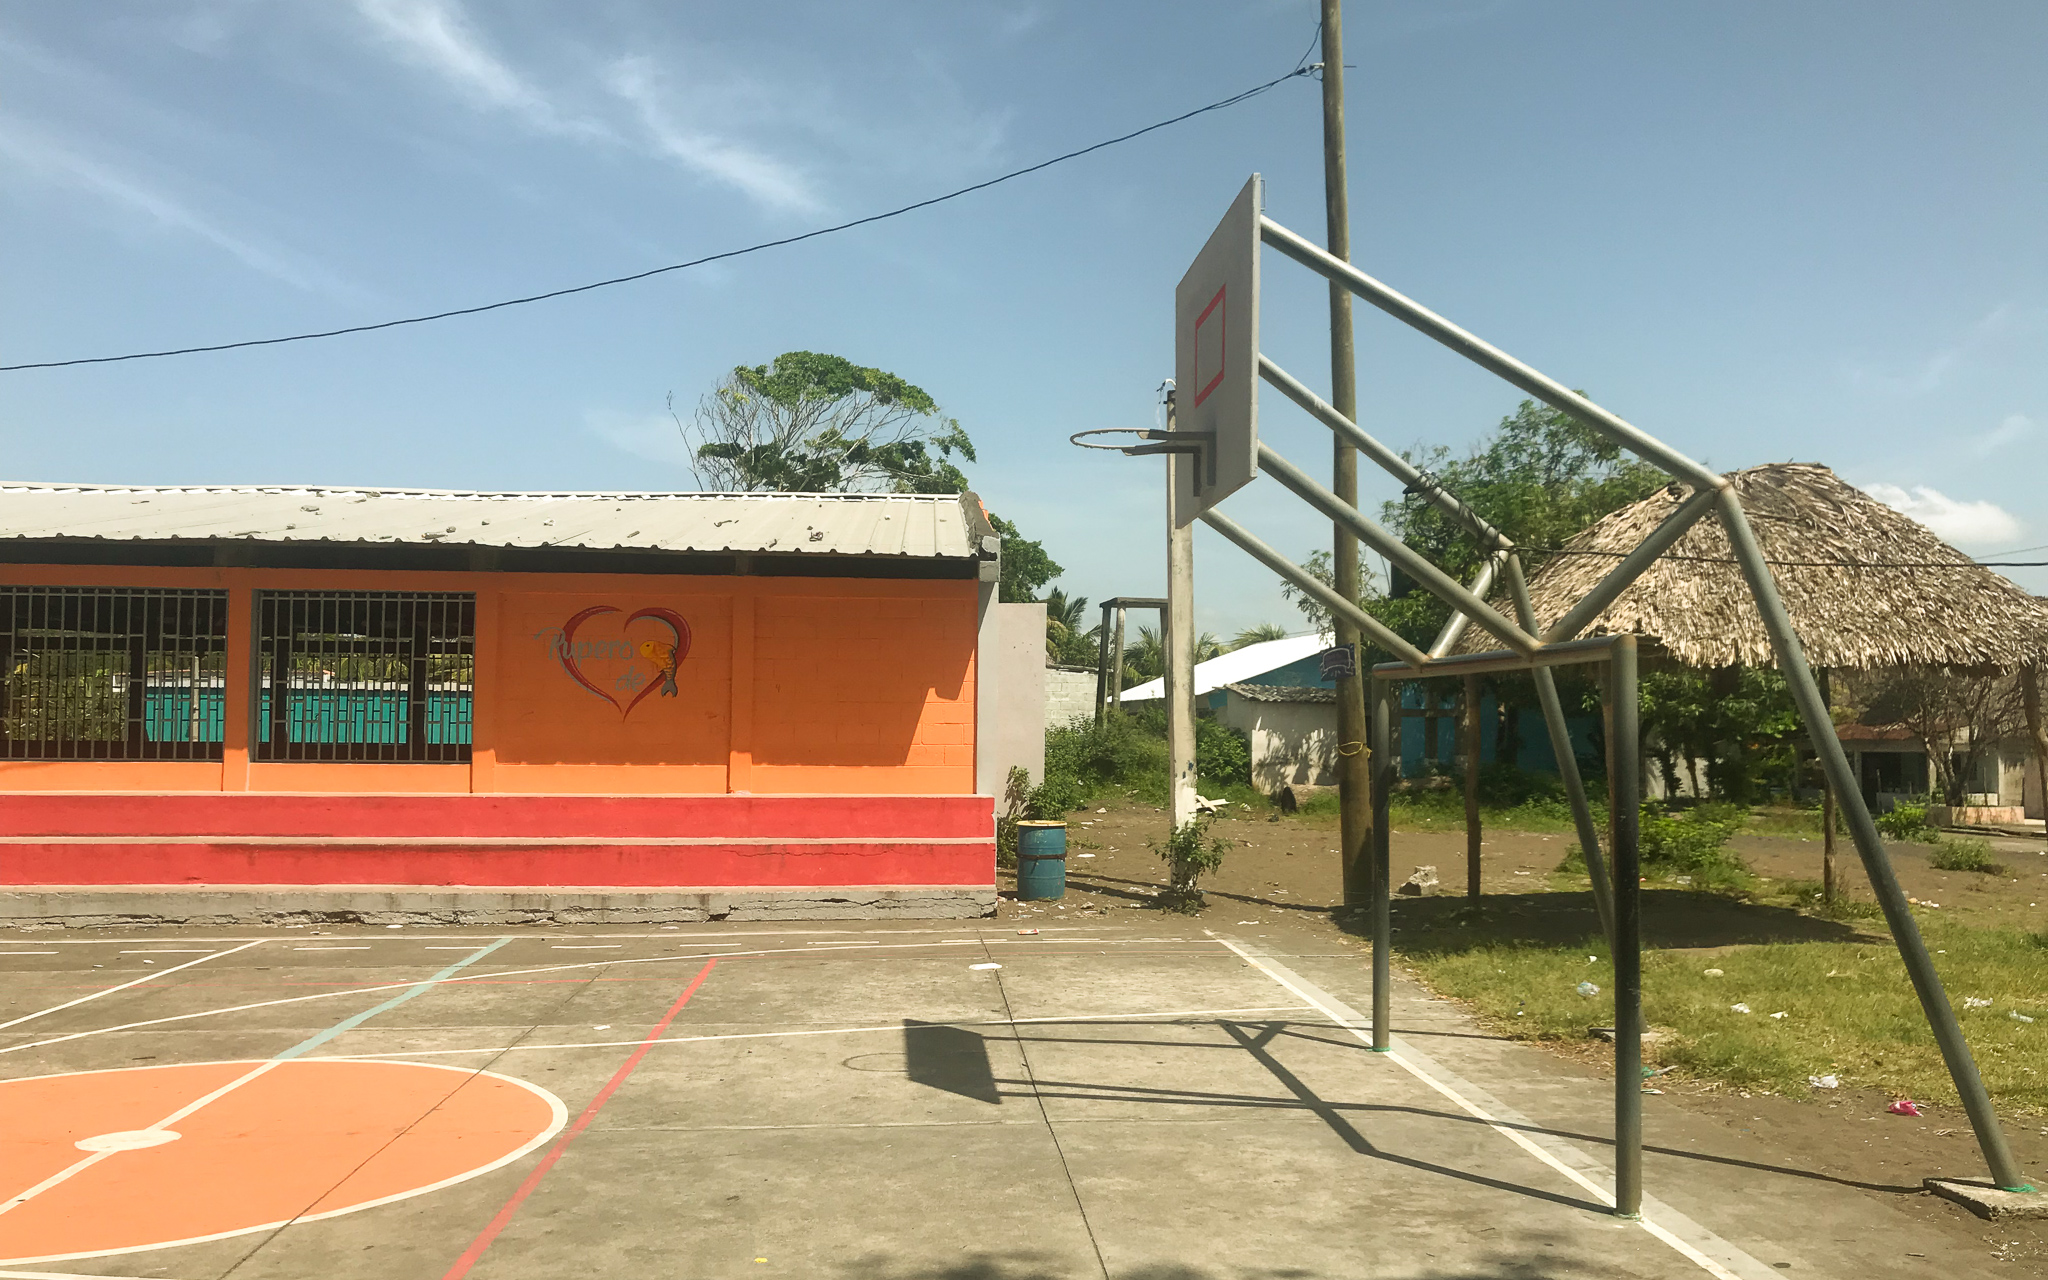 Interesting basketball courts in Guatemala